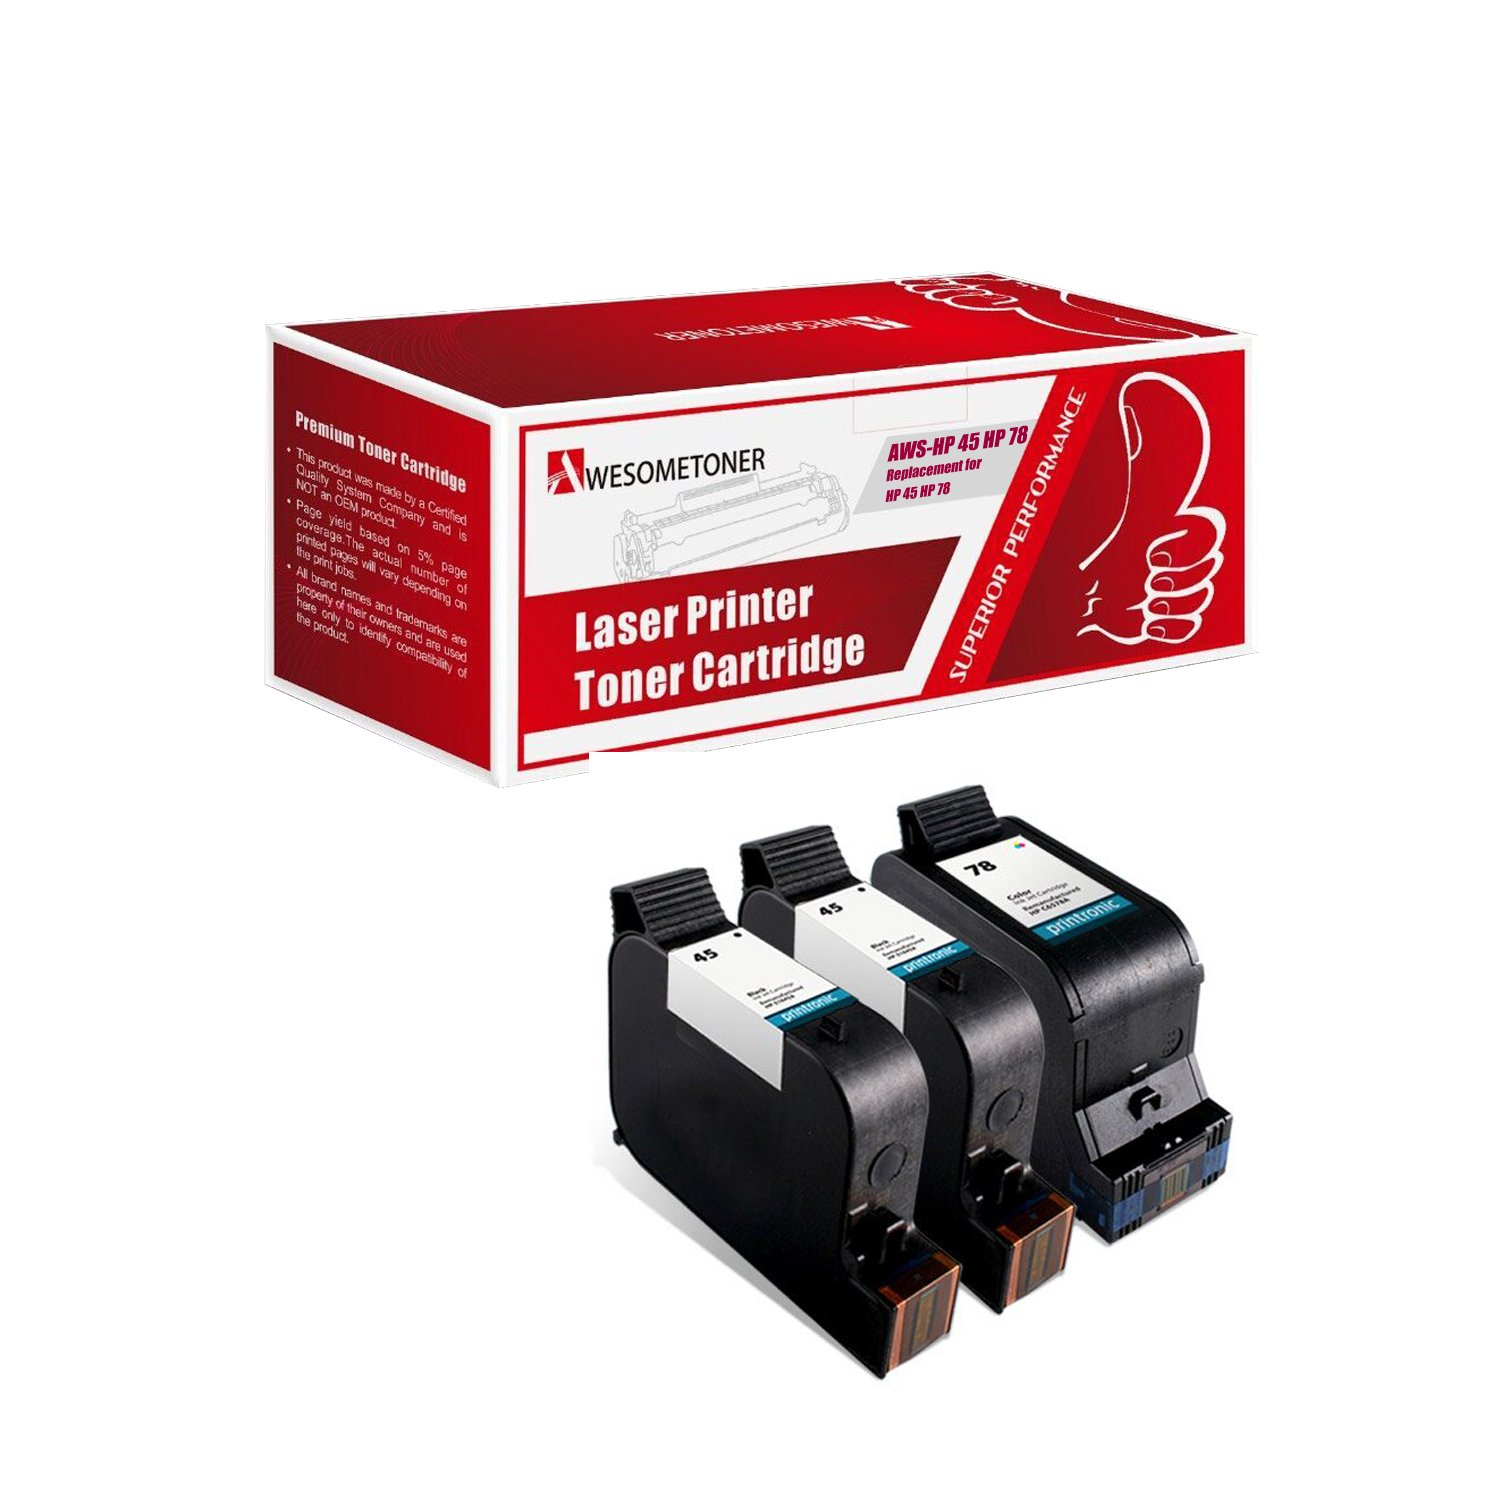 Remanufactured Ink Cartridge Replacement for HP 45 HP 78 (2 Black 1 Color 3 Pack)